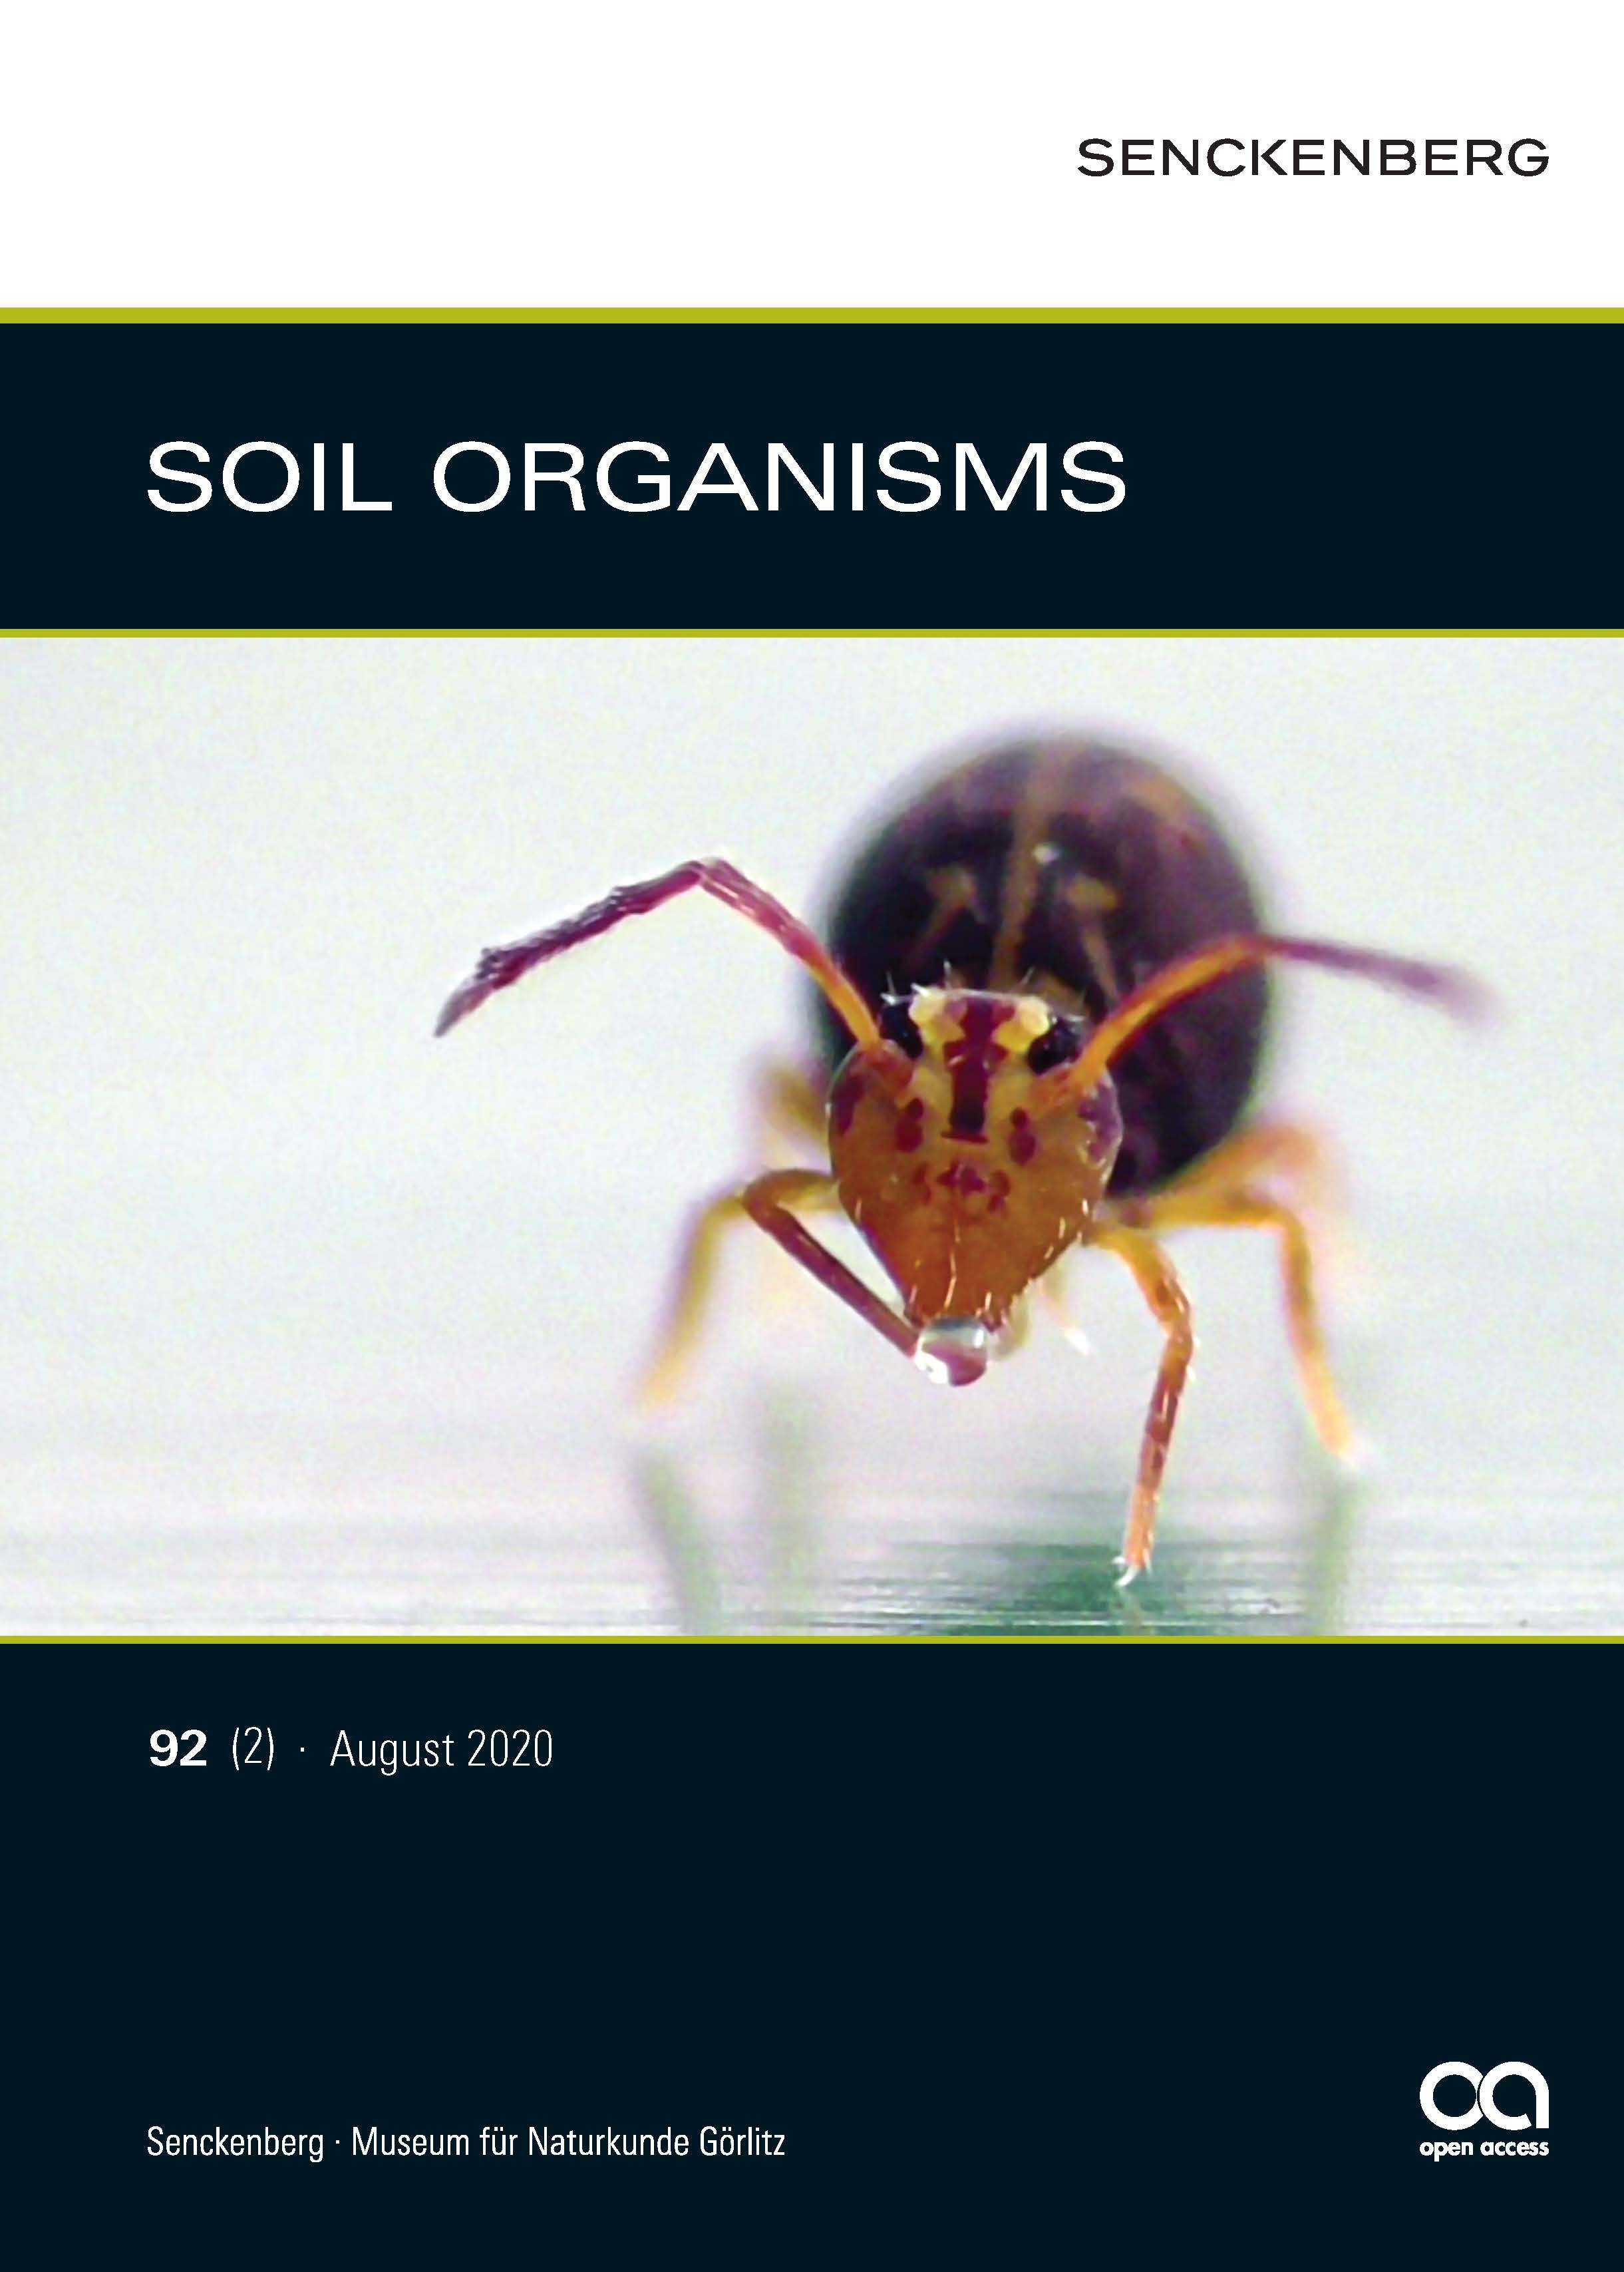 Front cover: Dicyrtominaornata (Nicolet, 1842) by Lothar Lenz  Further free video material of springtails by Lothar Lenz is available via https://www.youtube.com/user/lpf911